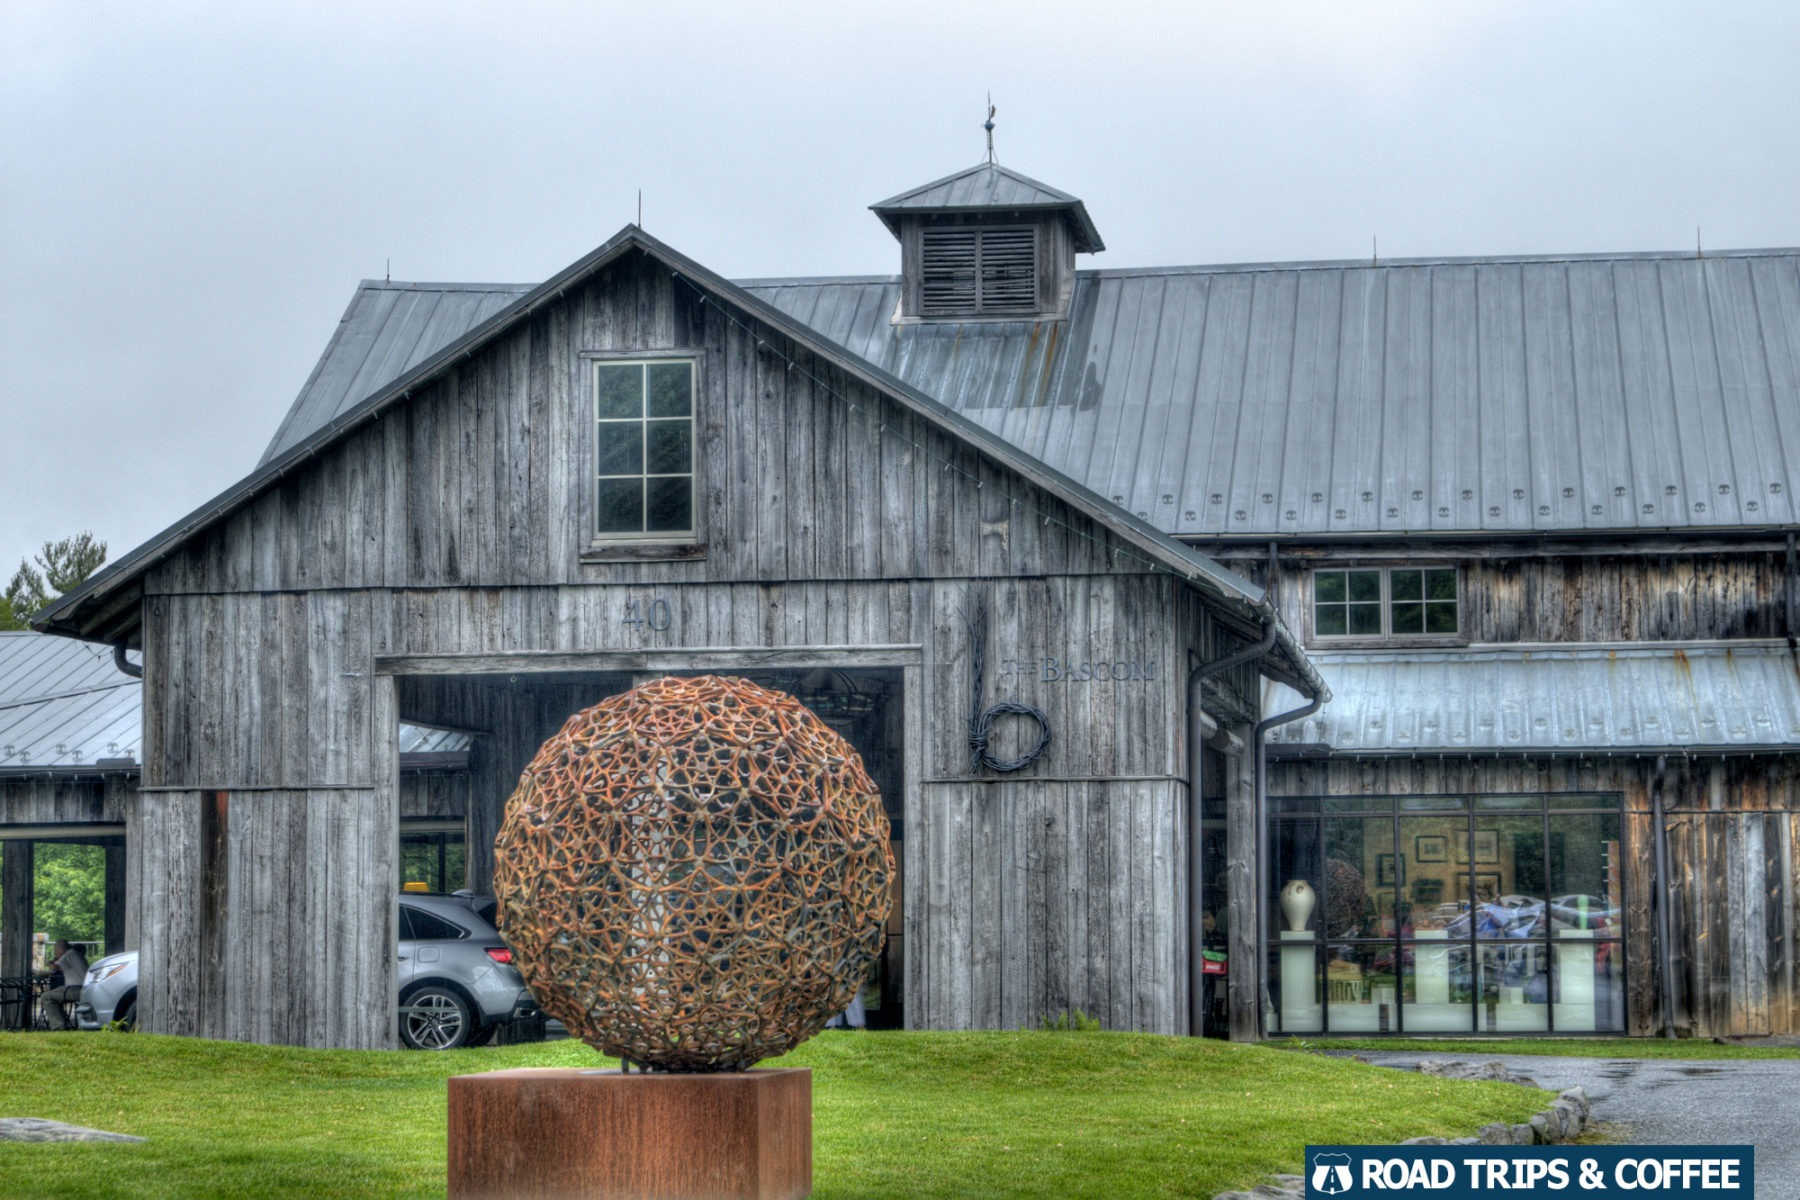 The rustic barn style of The Bascom art center in Highlands, North Carolina